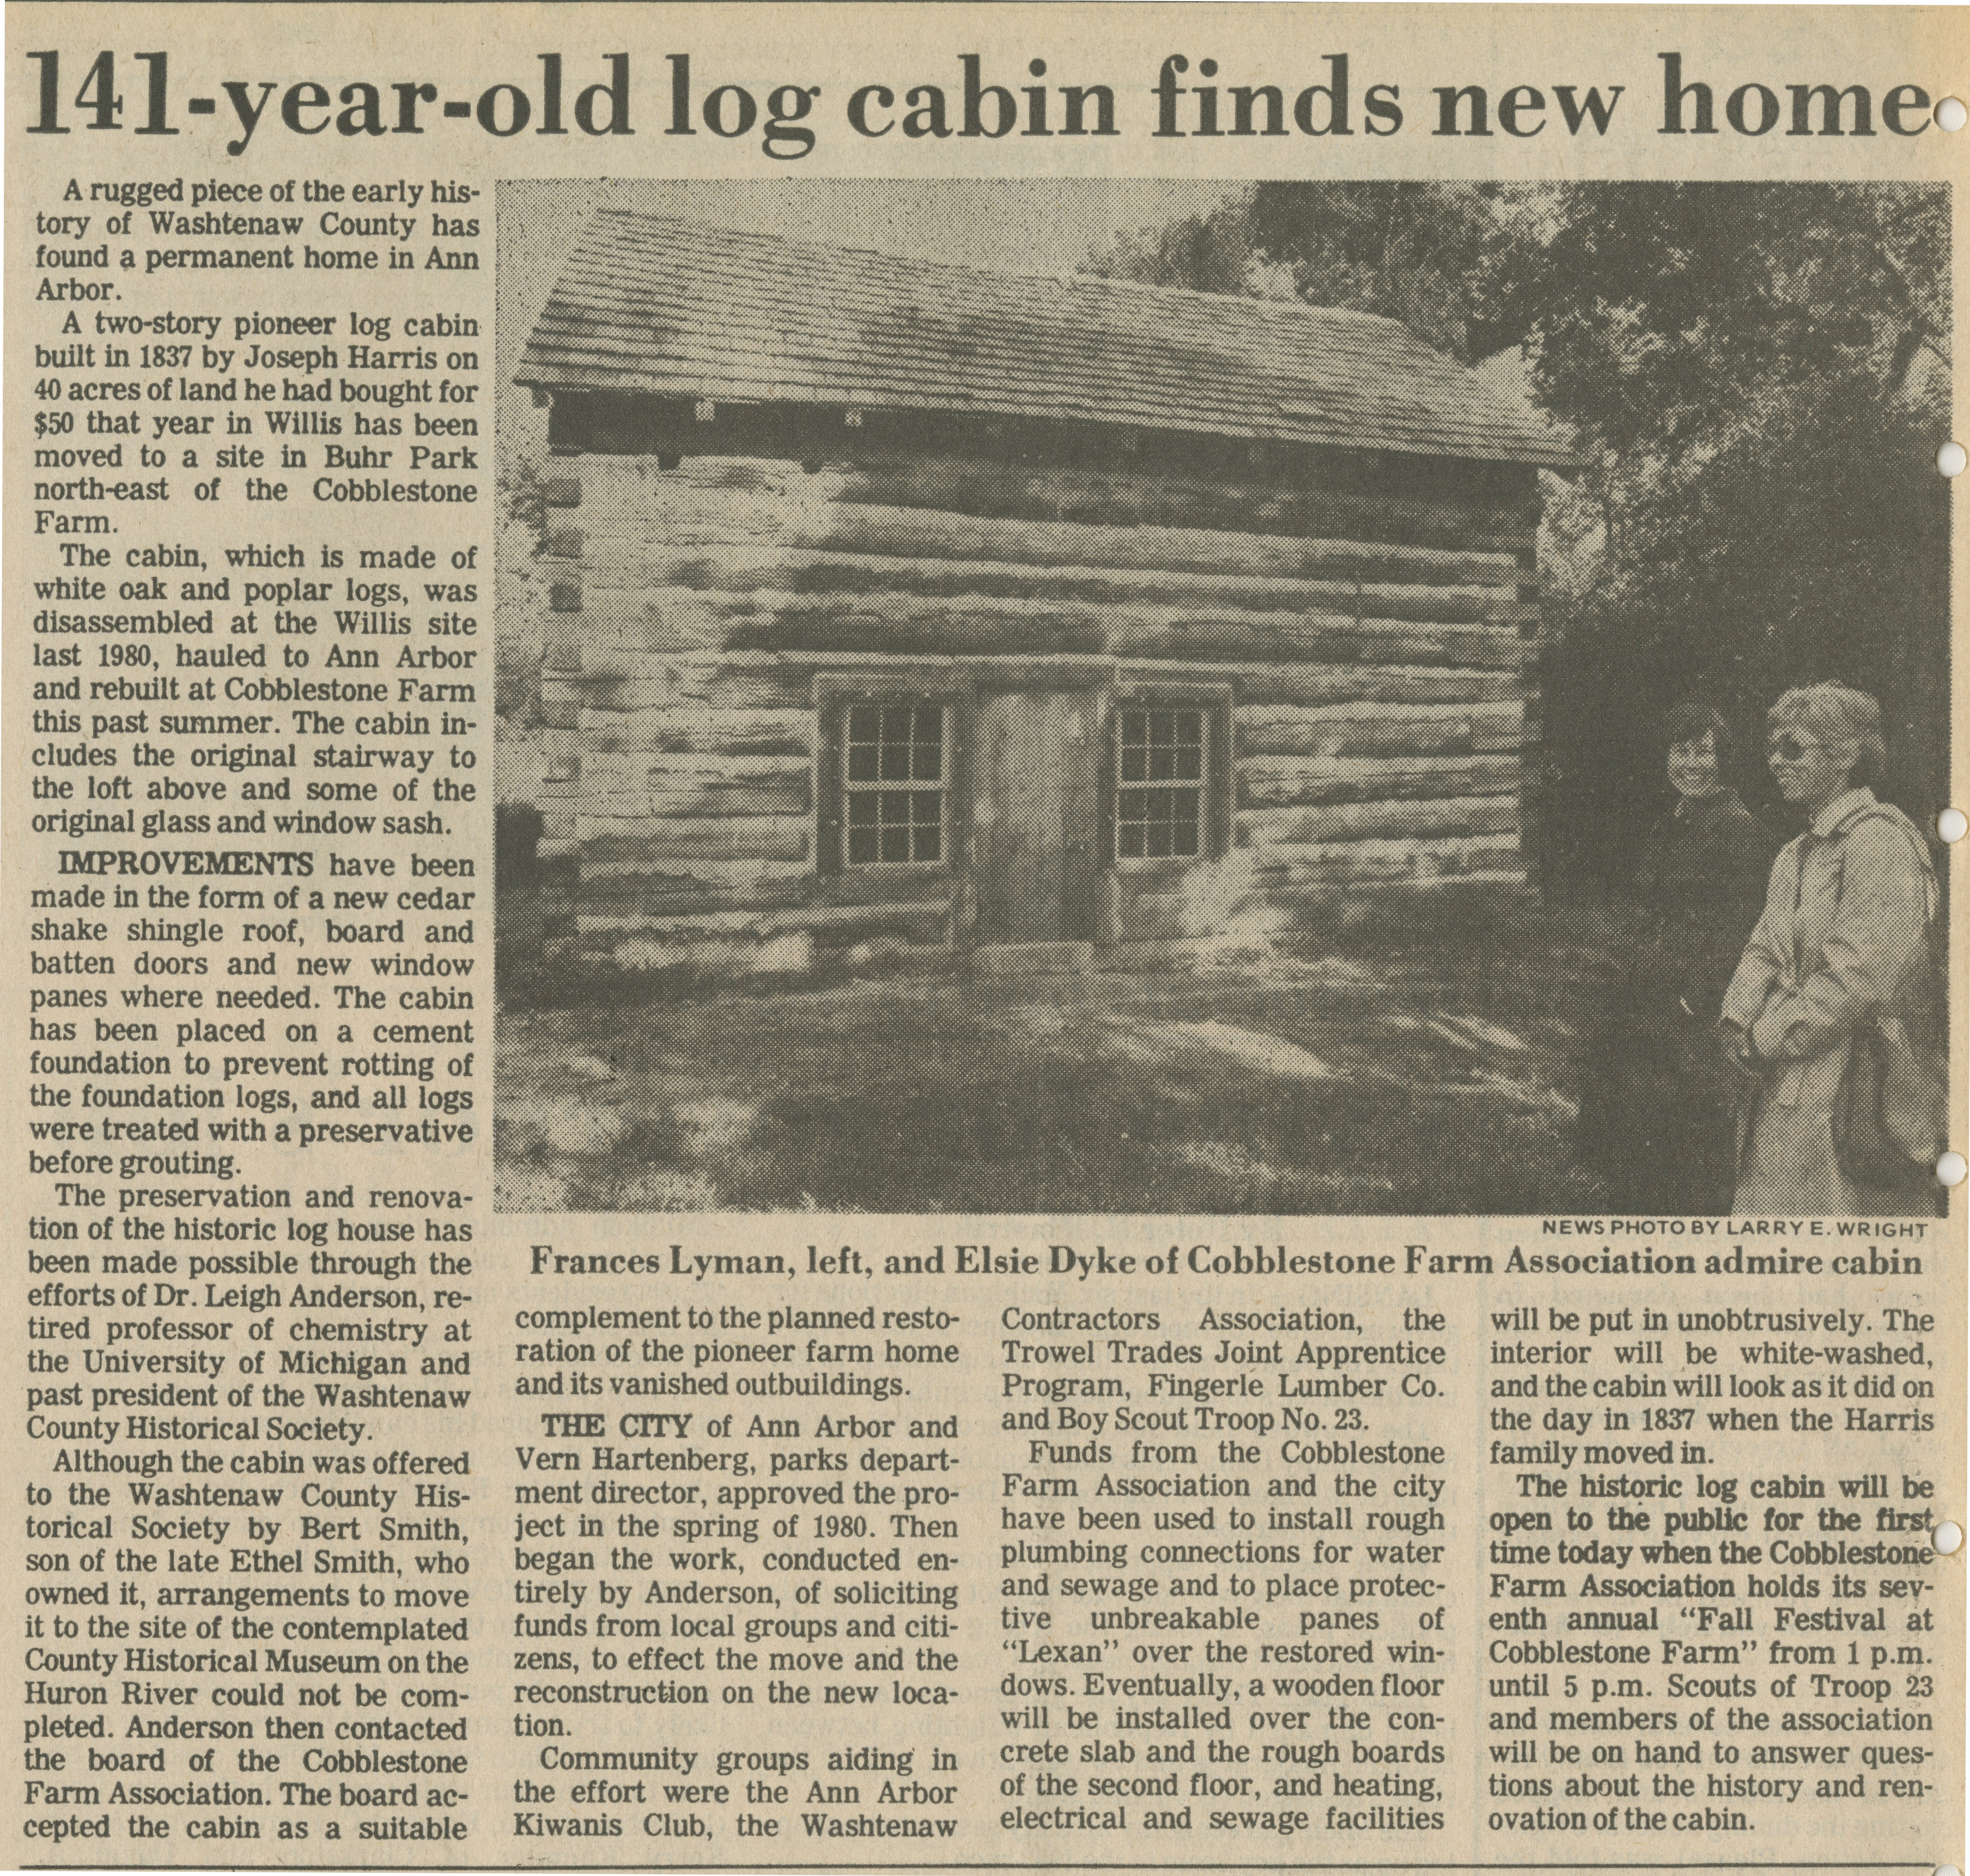 141-Year-Old Log Cabin Finds New Home image